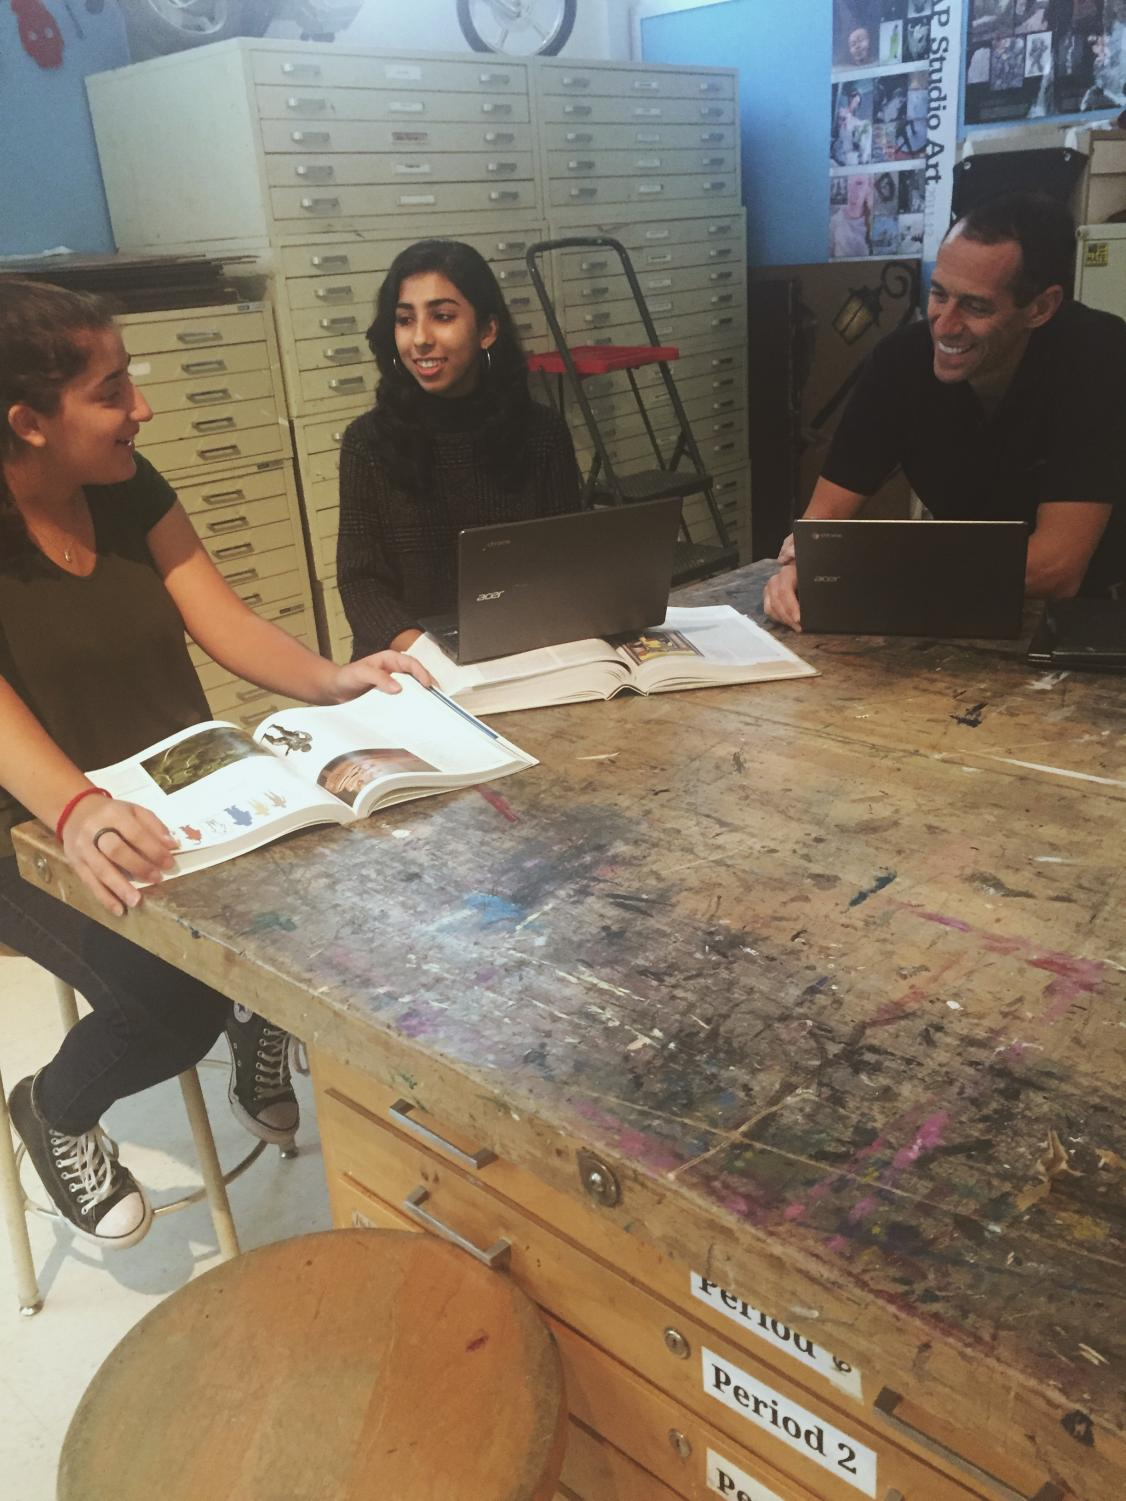 Juniors Nura Dhar and Leah Stein, along with art teacher Paul Dermont discuss plans to create a new arts course at CHS next year. The course will have lessons and Socratic-seminar type discussions.